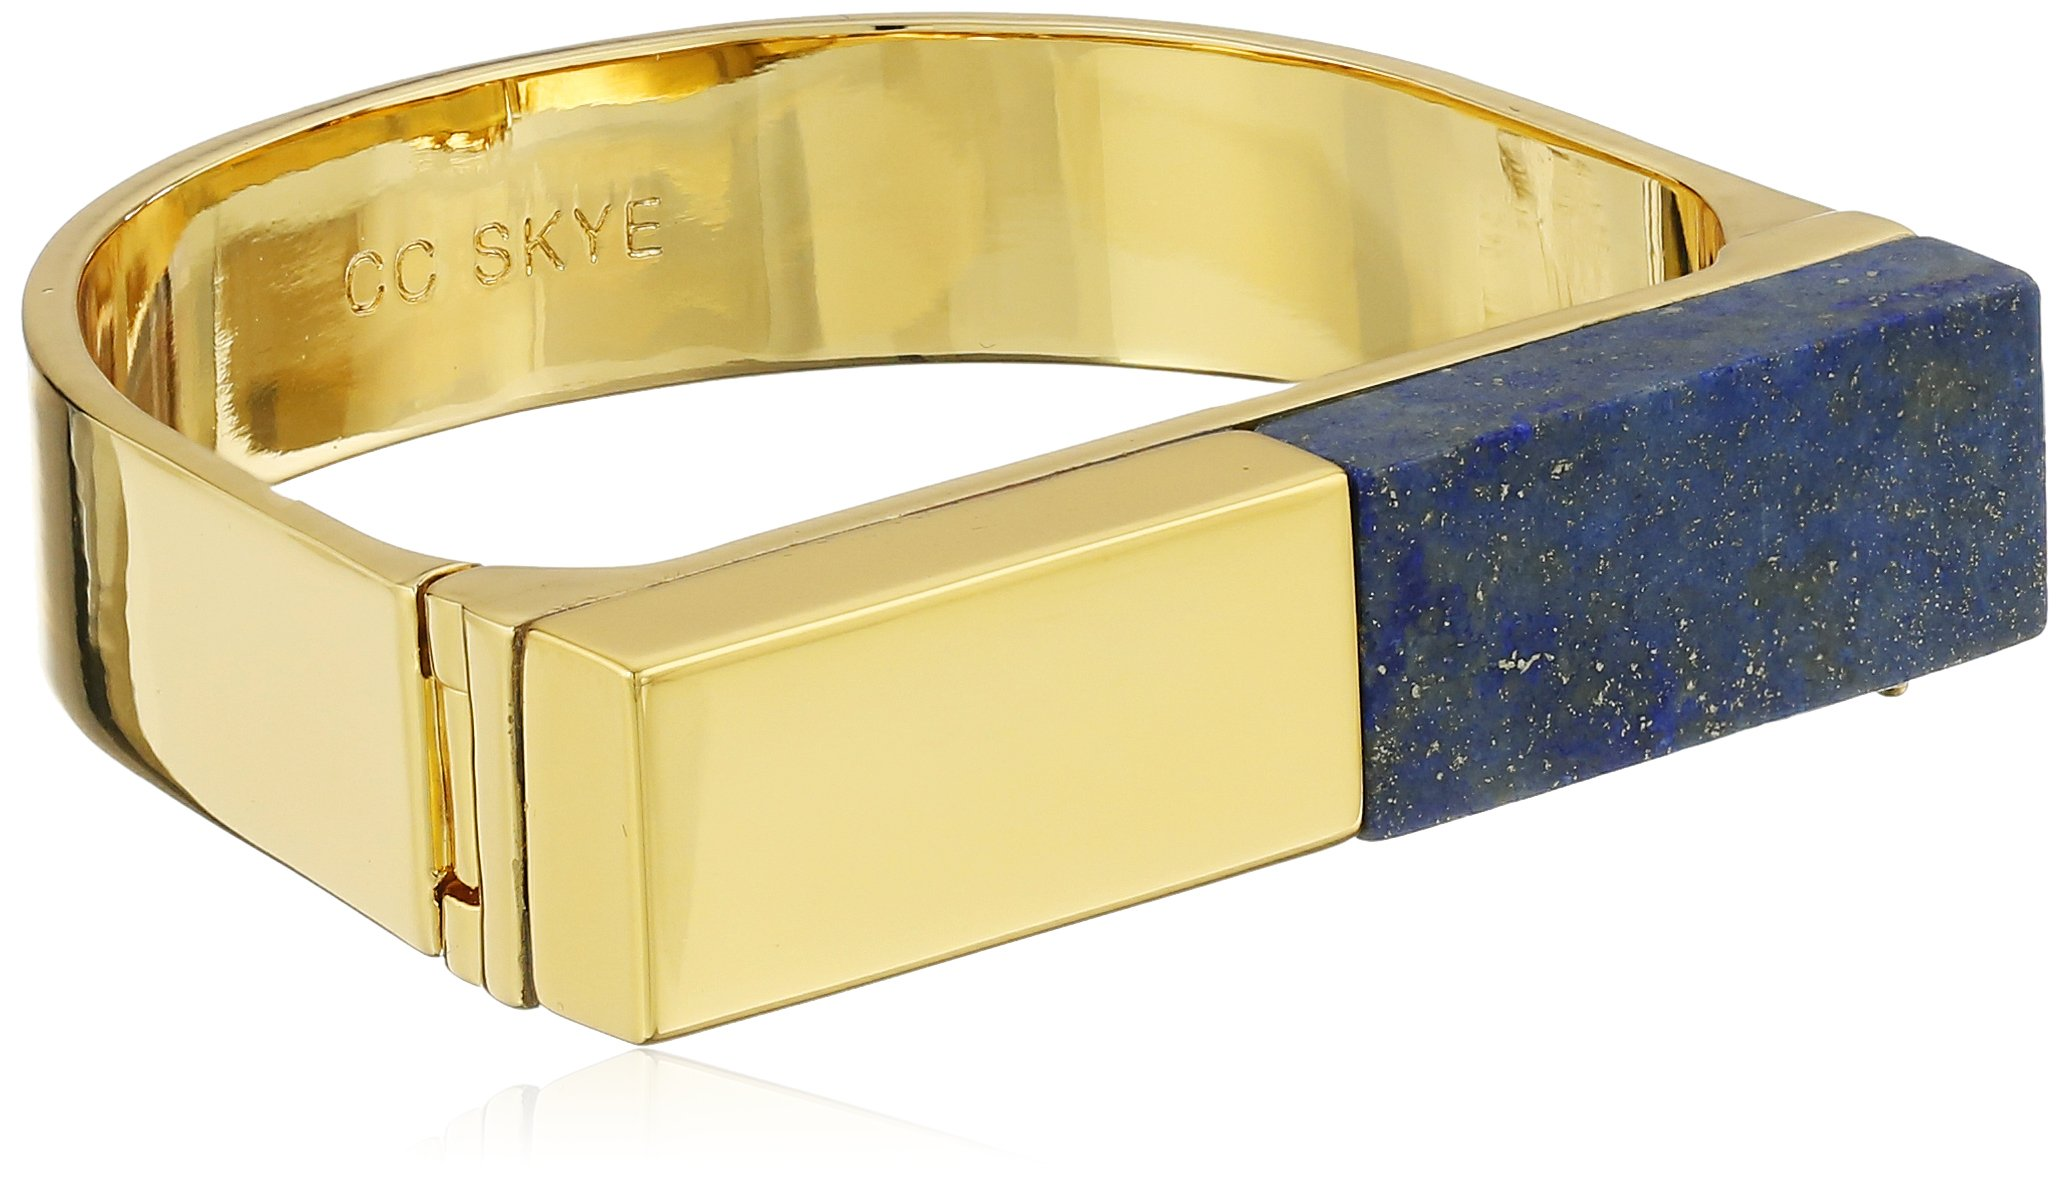 CC Skye Gold and Lapis The Platform Cuff Bracelet